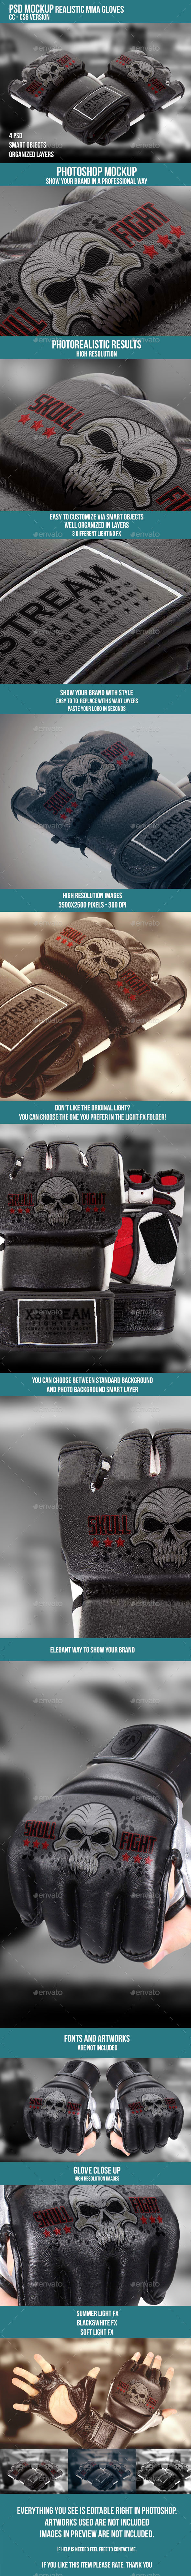 Mma Gloves PSD Mockup - Product Mock-Ups Graphics